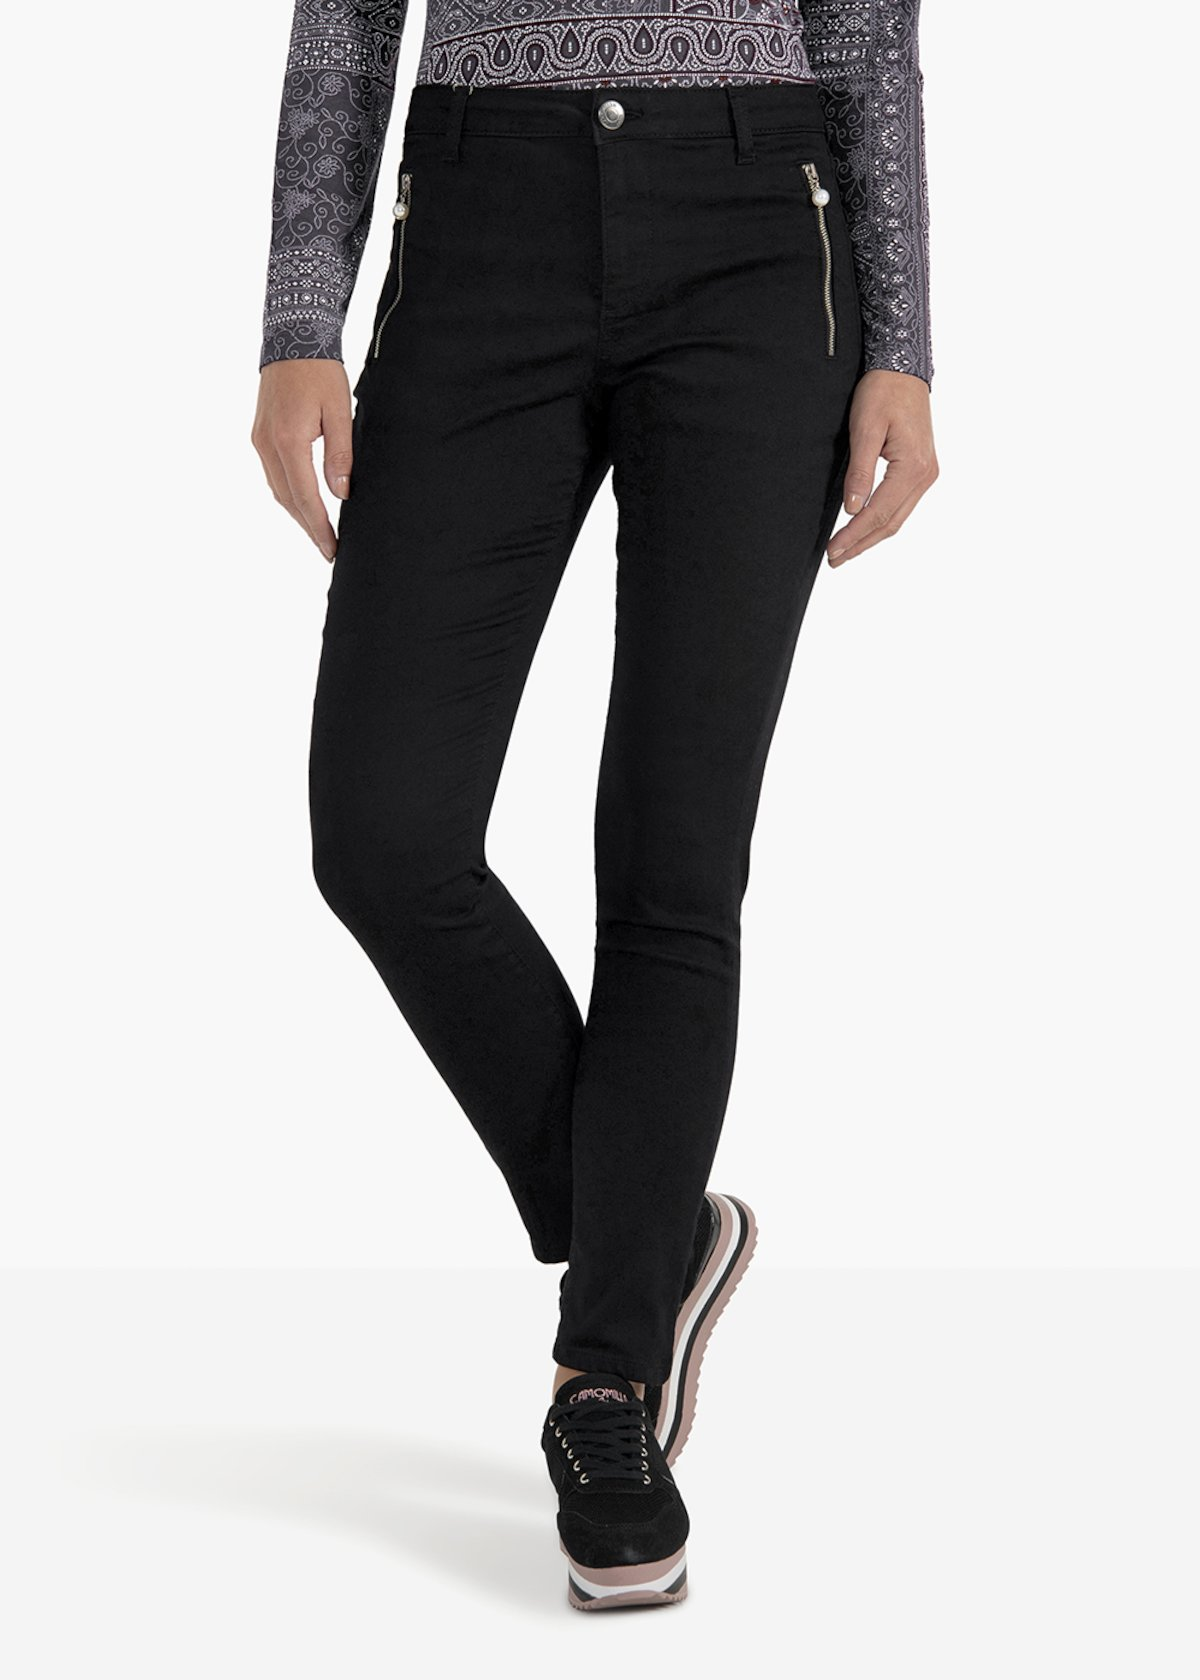 Phil skinny leg trousers with double front zip - Black - Woman